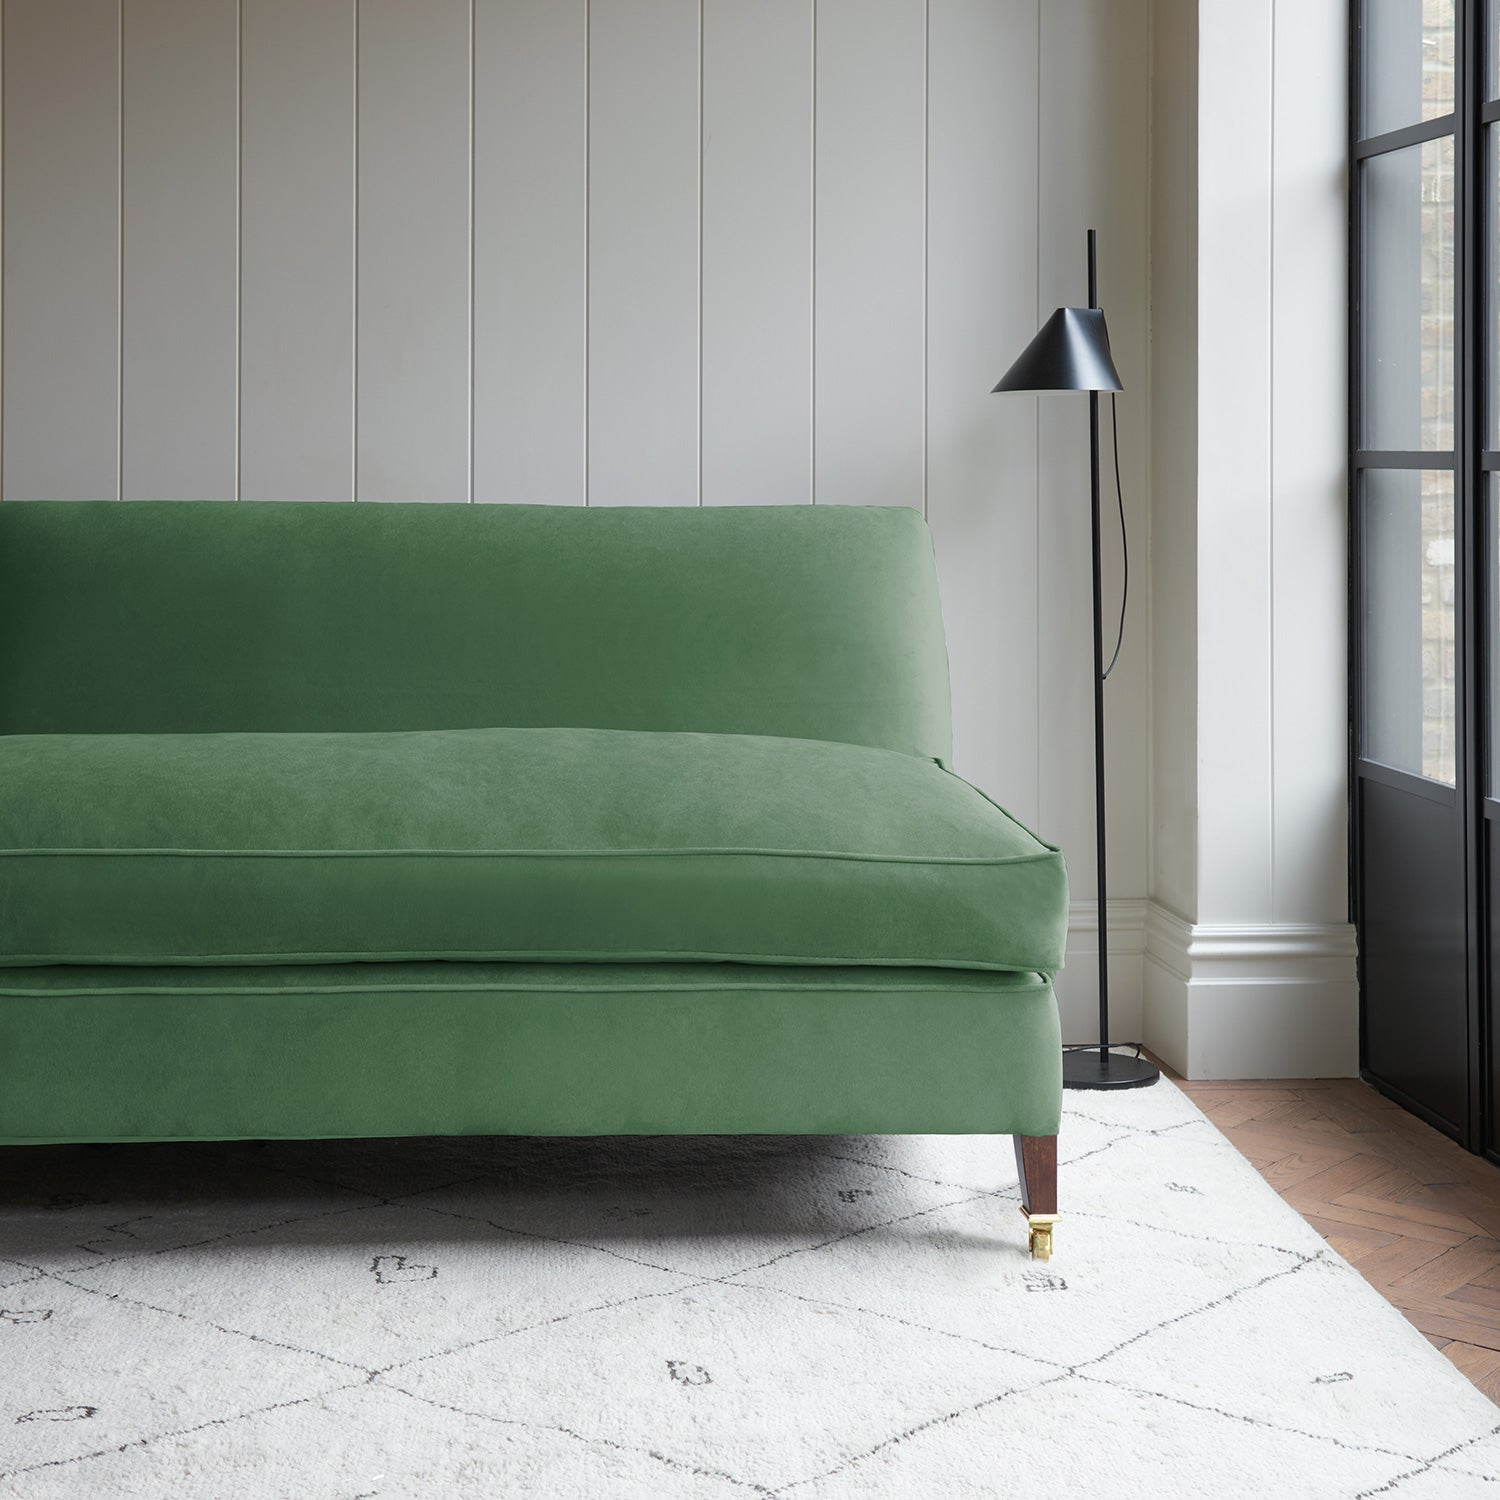 Velvet sofa in a sage green velvet fabric with stain resistant finish